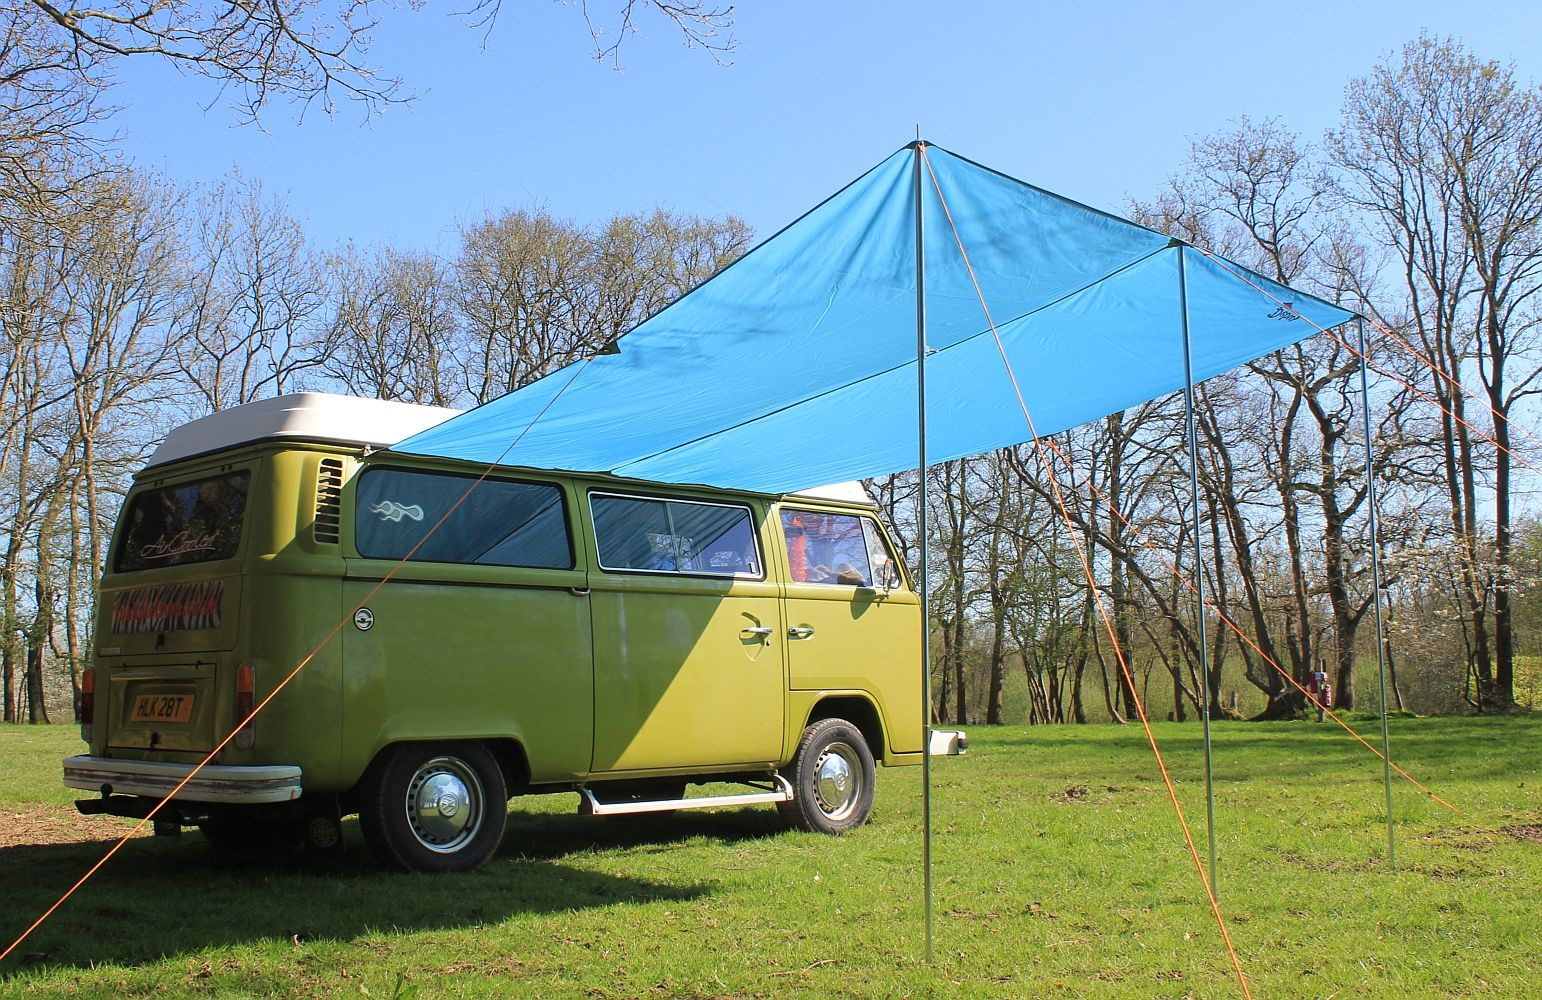 Debus Campervan Sun Canopy Awning T2 T25 Connection Kit Azure Blue